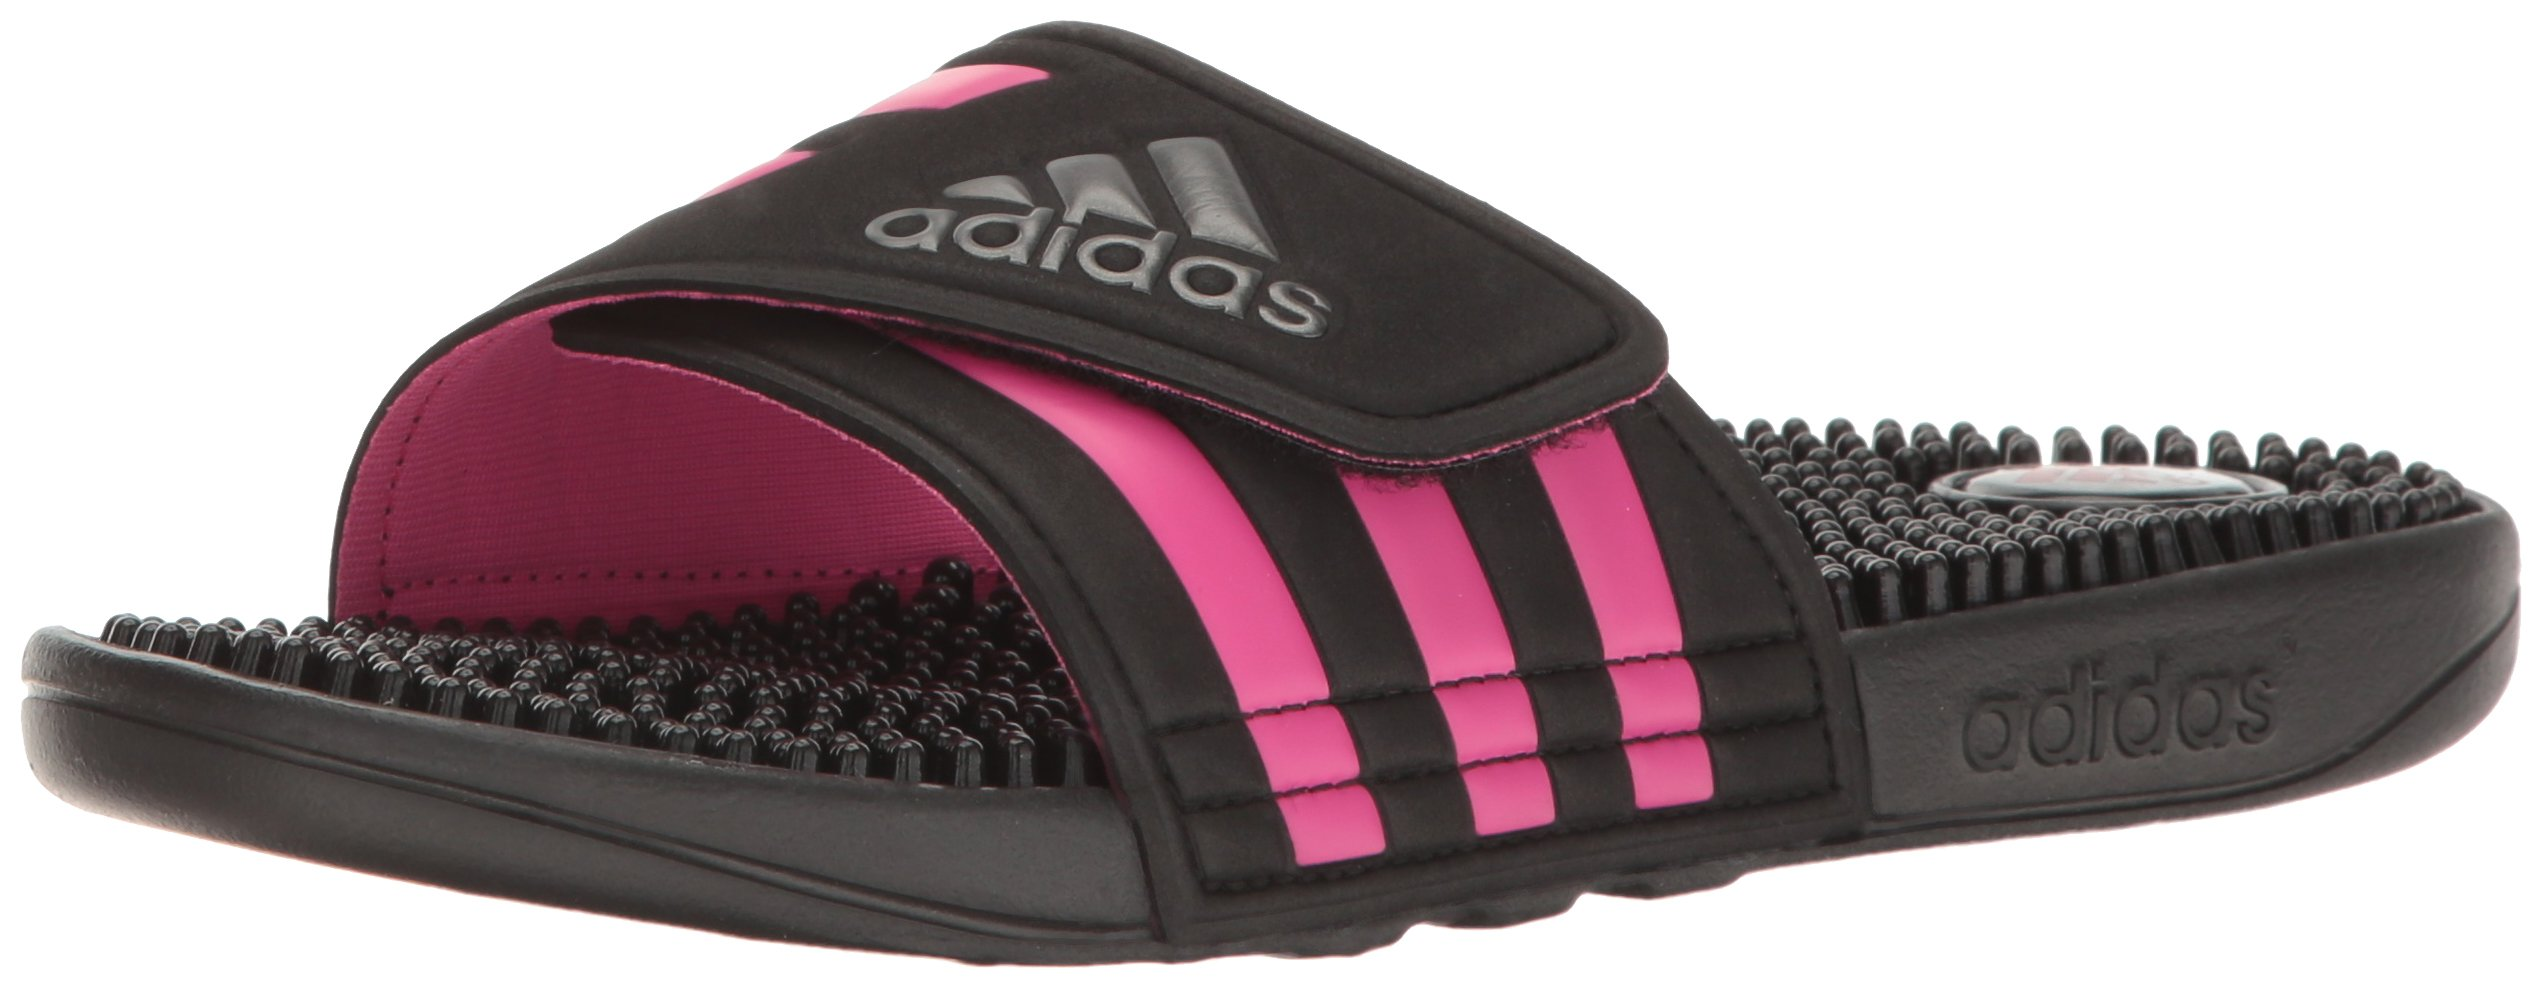 4907eb607560 Get Quotations · adidas Originals Women s Adissage W Slide Sandal